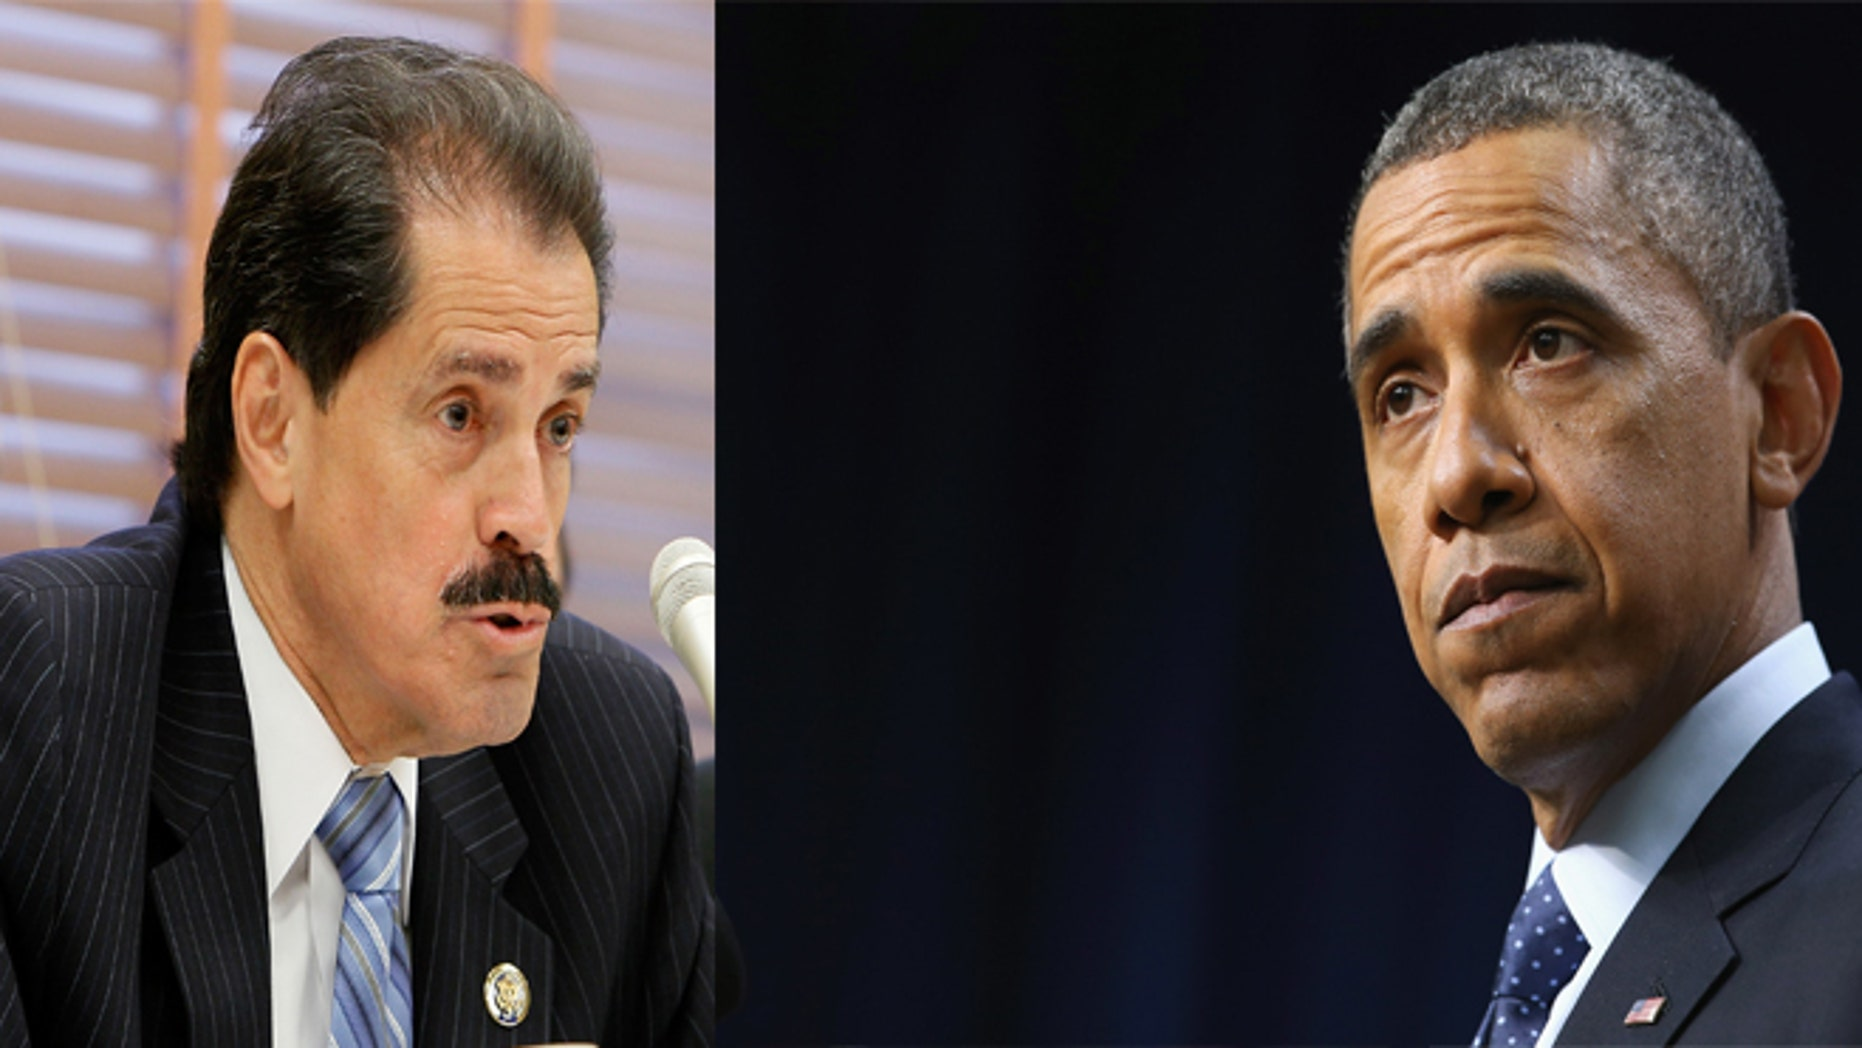 José Serrano (left) and President Barack Obama (right).